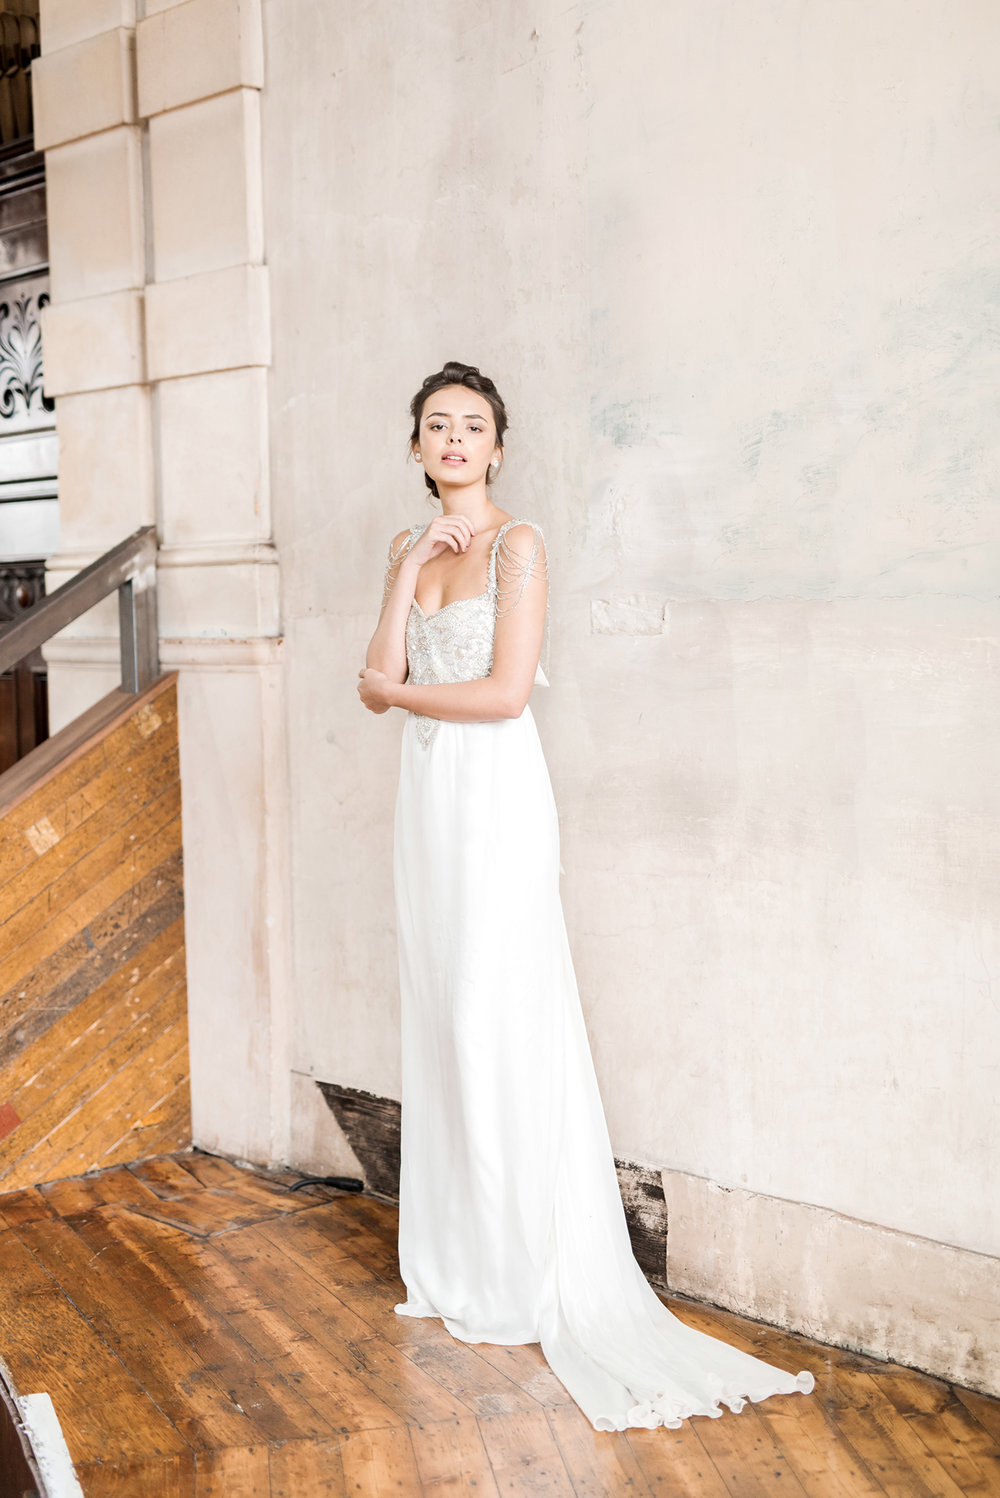 Anna Campbell Bridal | Chloe Dress | Vintage Inspired Beaded Wedding Dress | Eternal Heart Collection